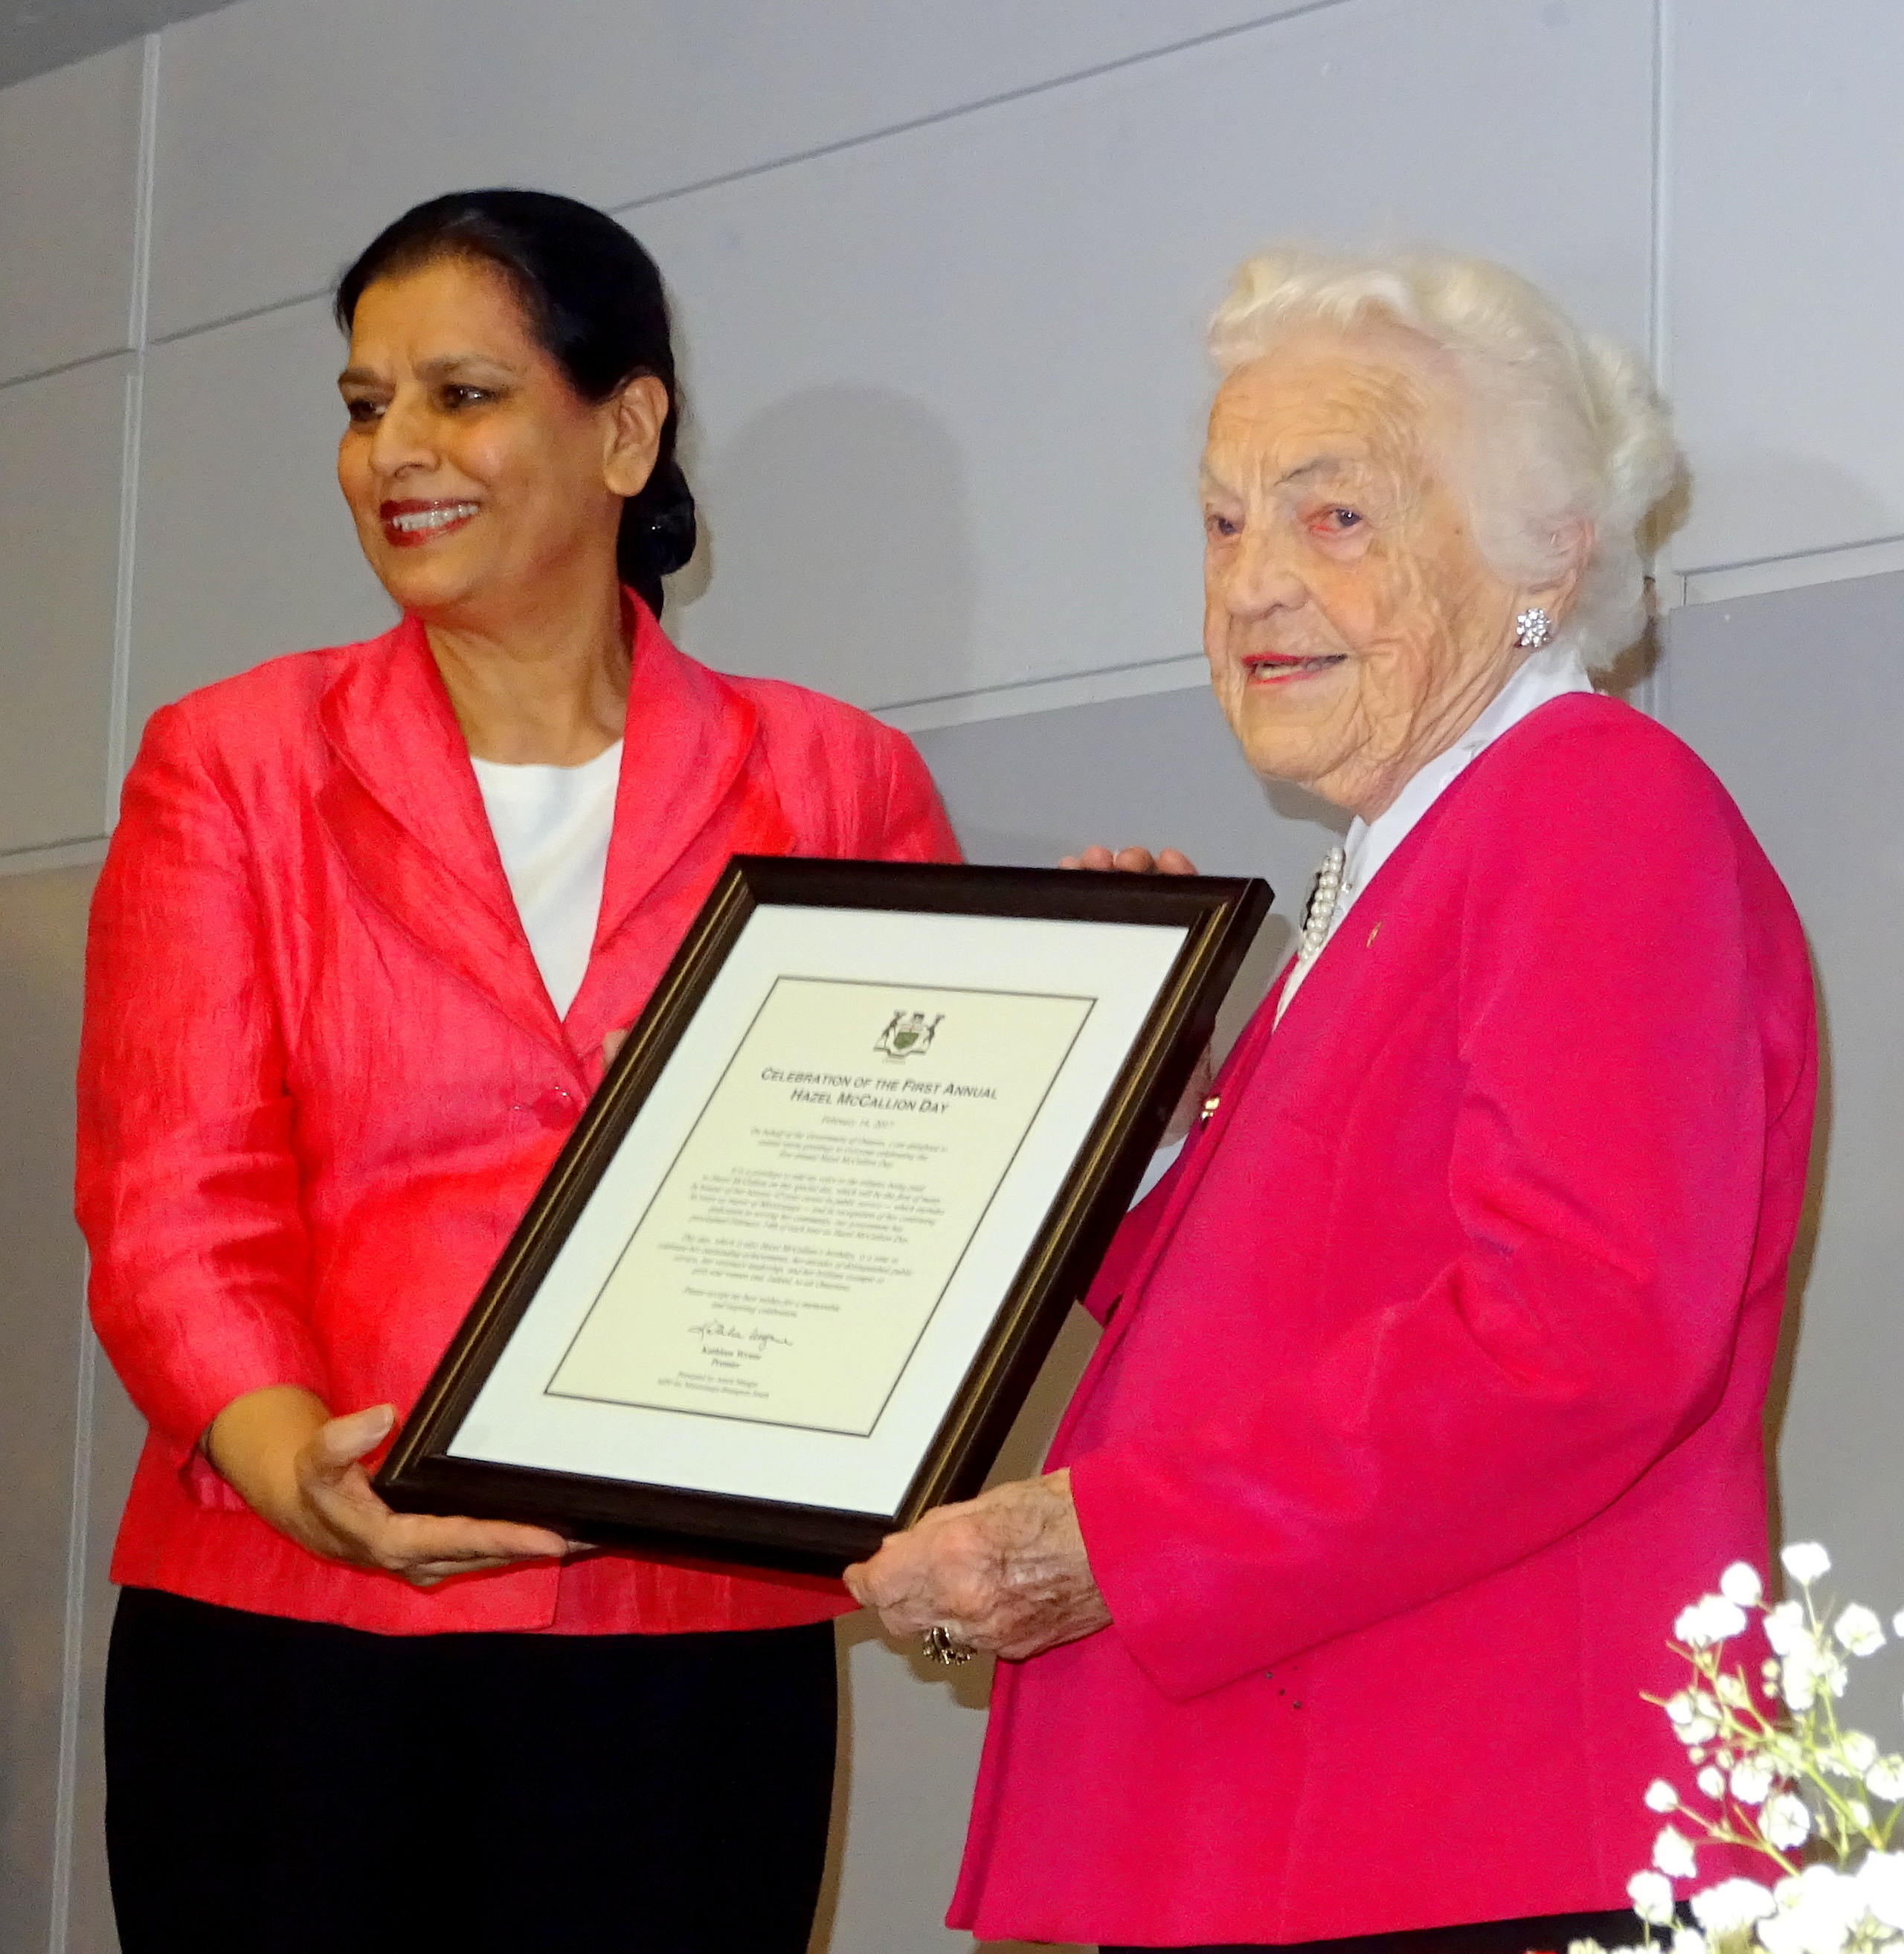 MPP Amrit Mangat and Hazel McCallion 14Feb2017 Photo by I Lee